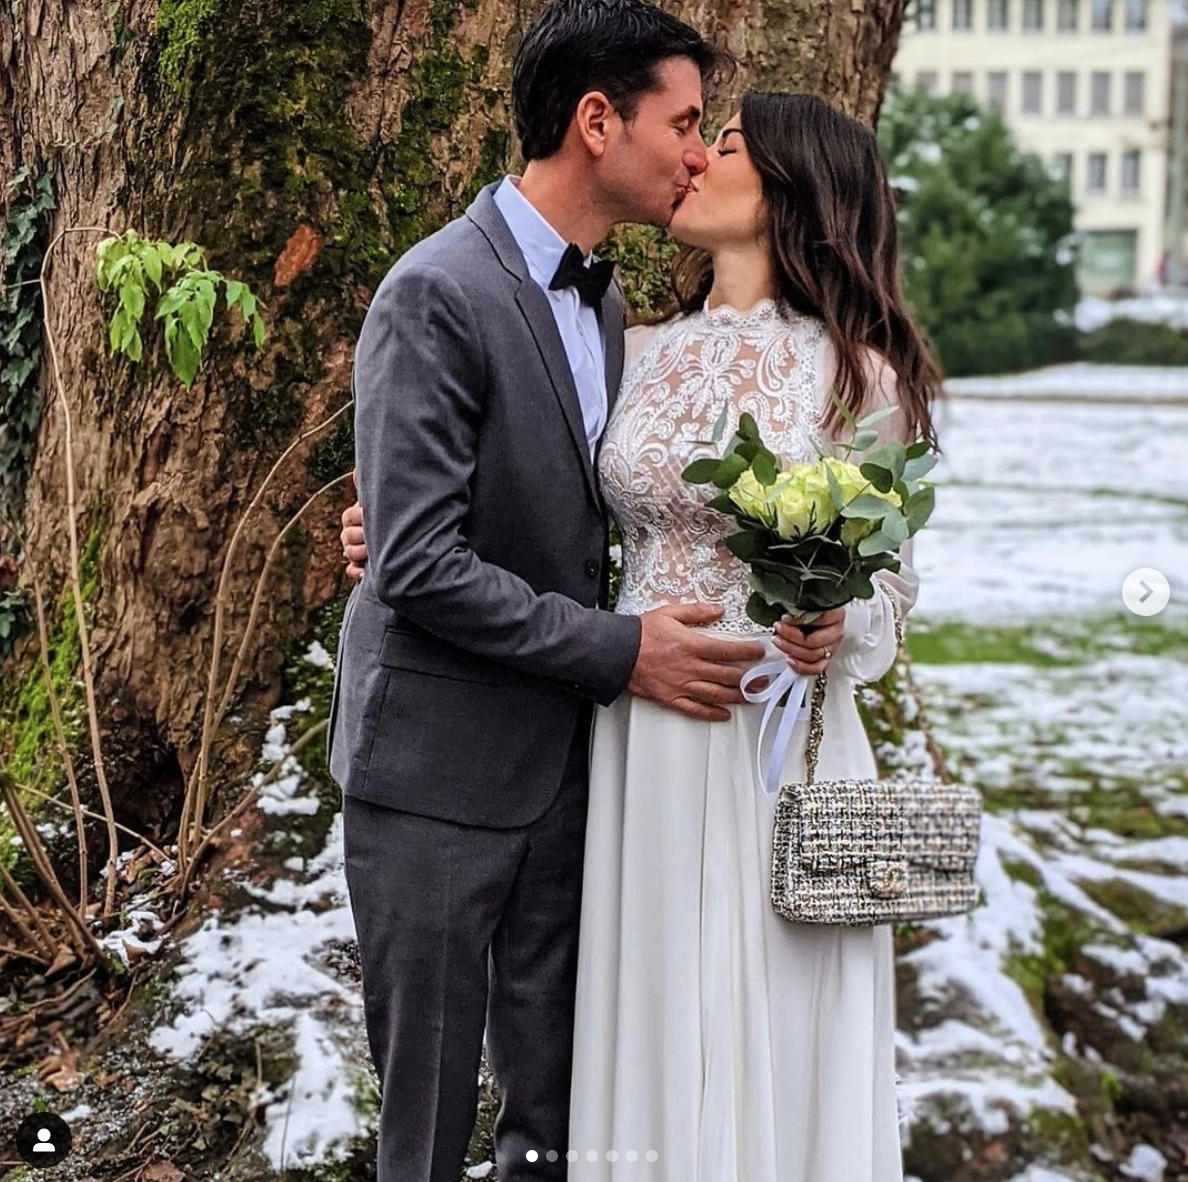 Steve Guerdat and Fanny Skalli married